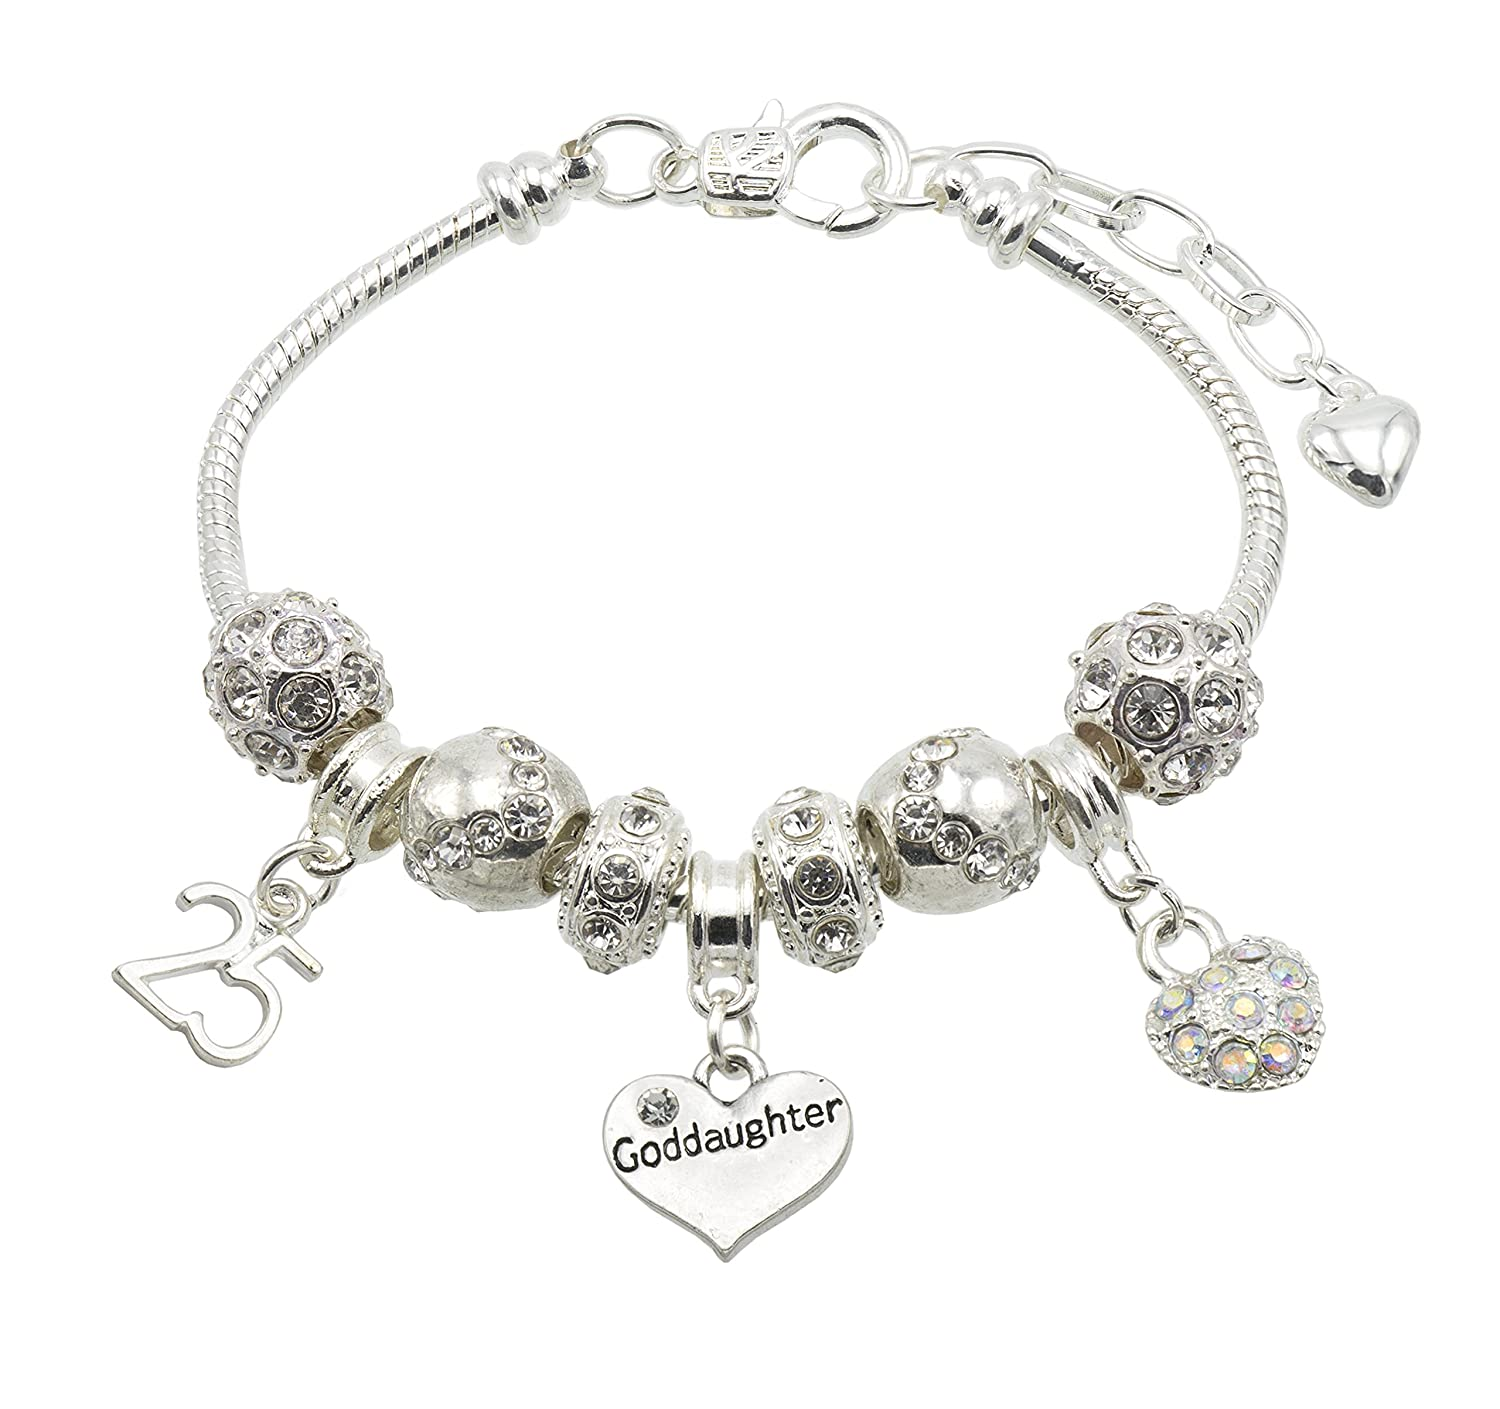 Goddaughter Birthday Charm Bracelet with Gift Box - Ages Available 13, 15, 16, 18, 20, 21, 25, 30, 35, 40, 45 & 50 45 & 50 (13th) Jewellery Hut BR#cmk001Goddaughter-13th